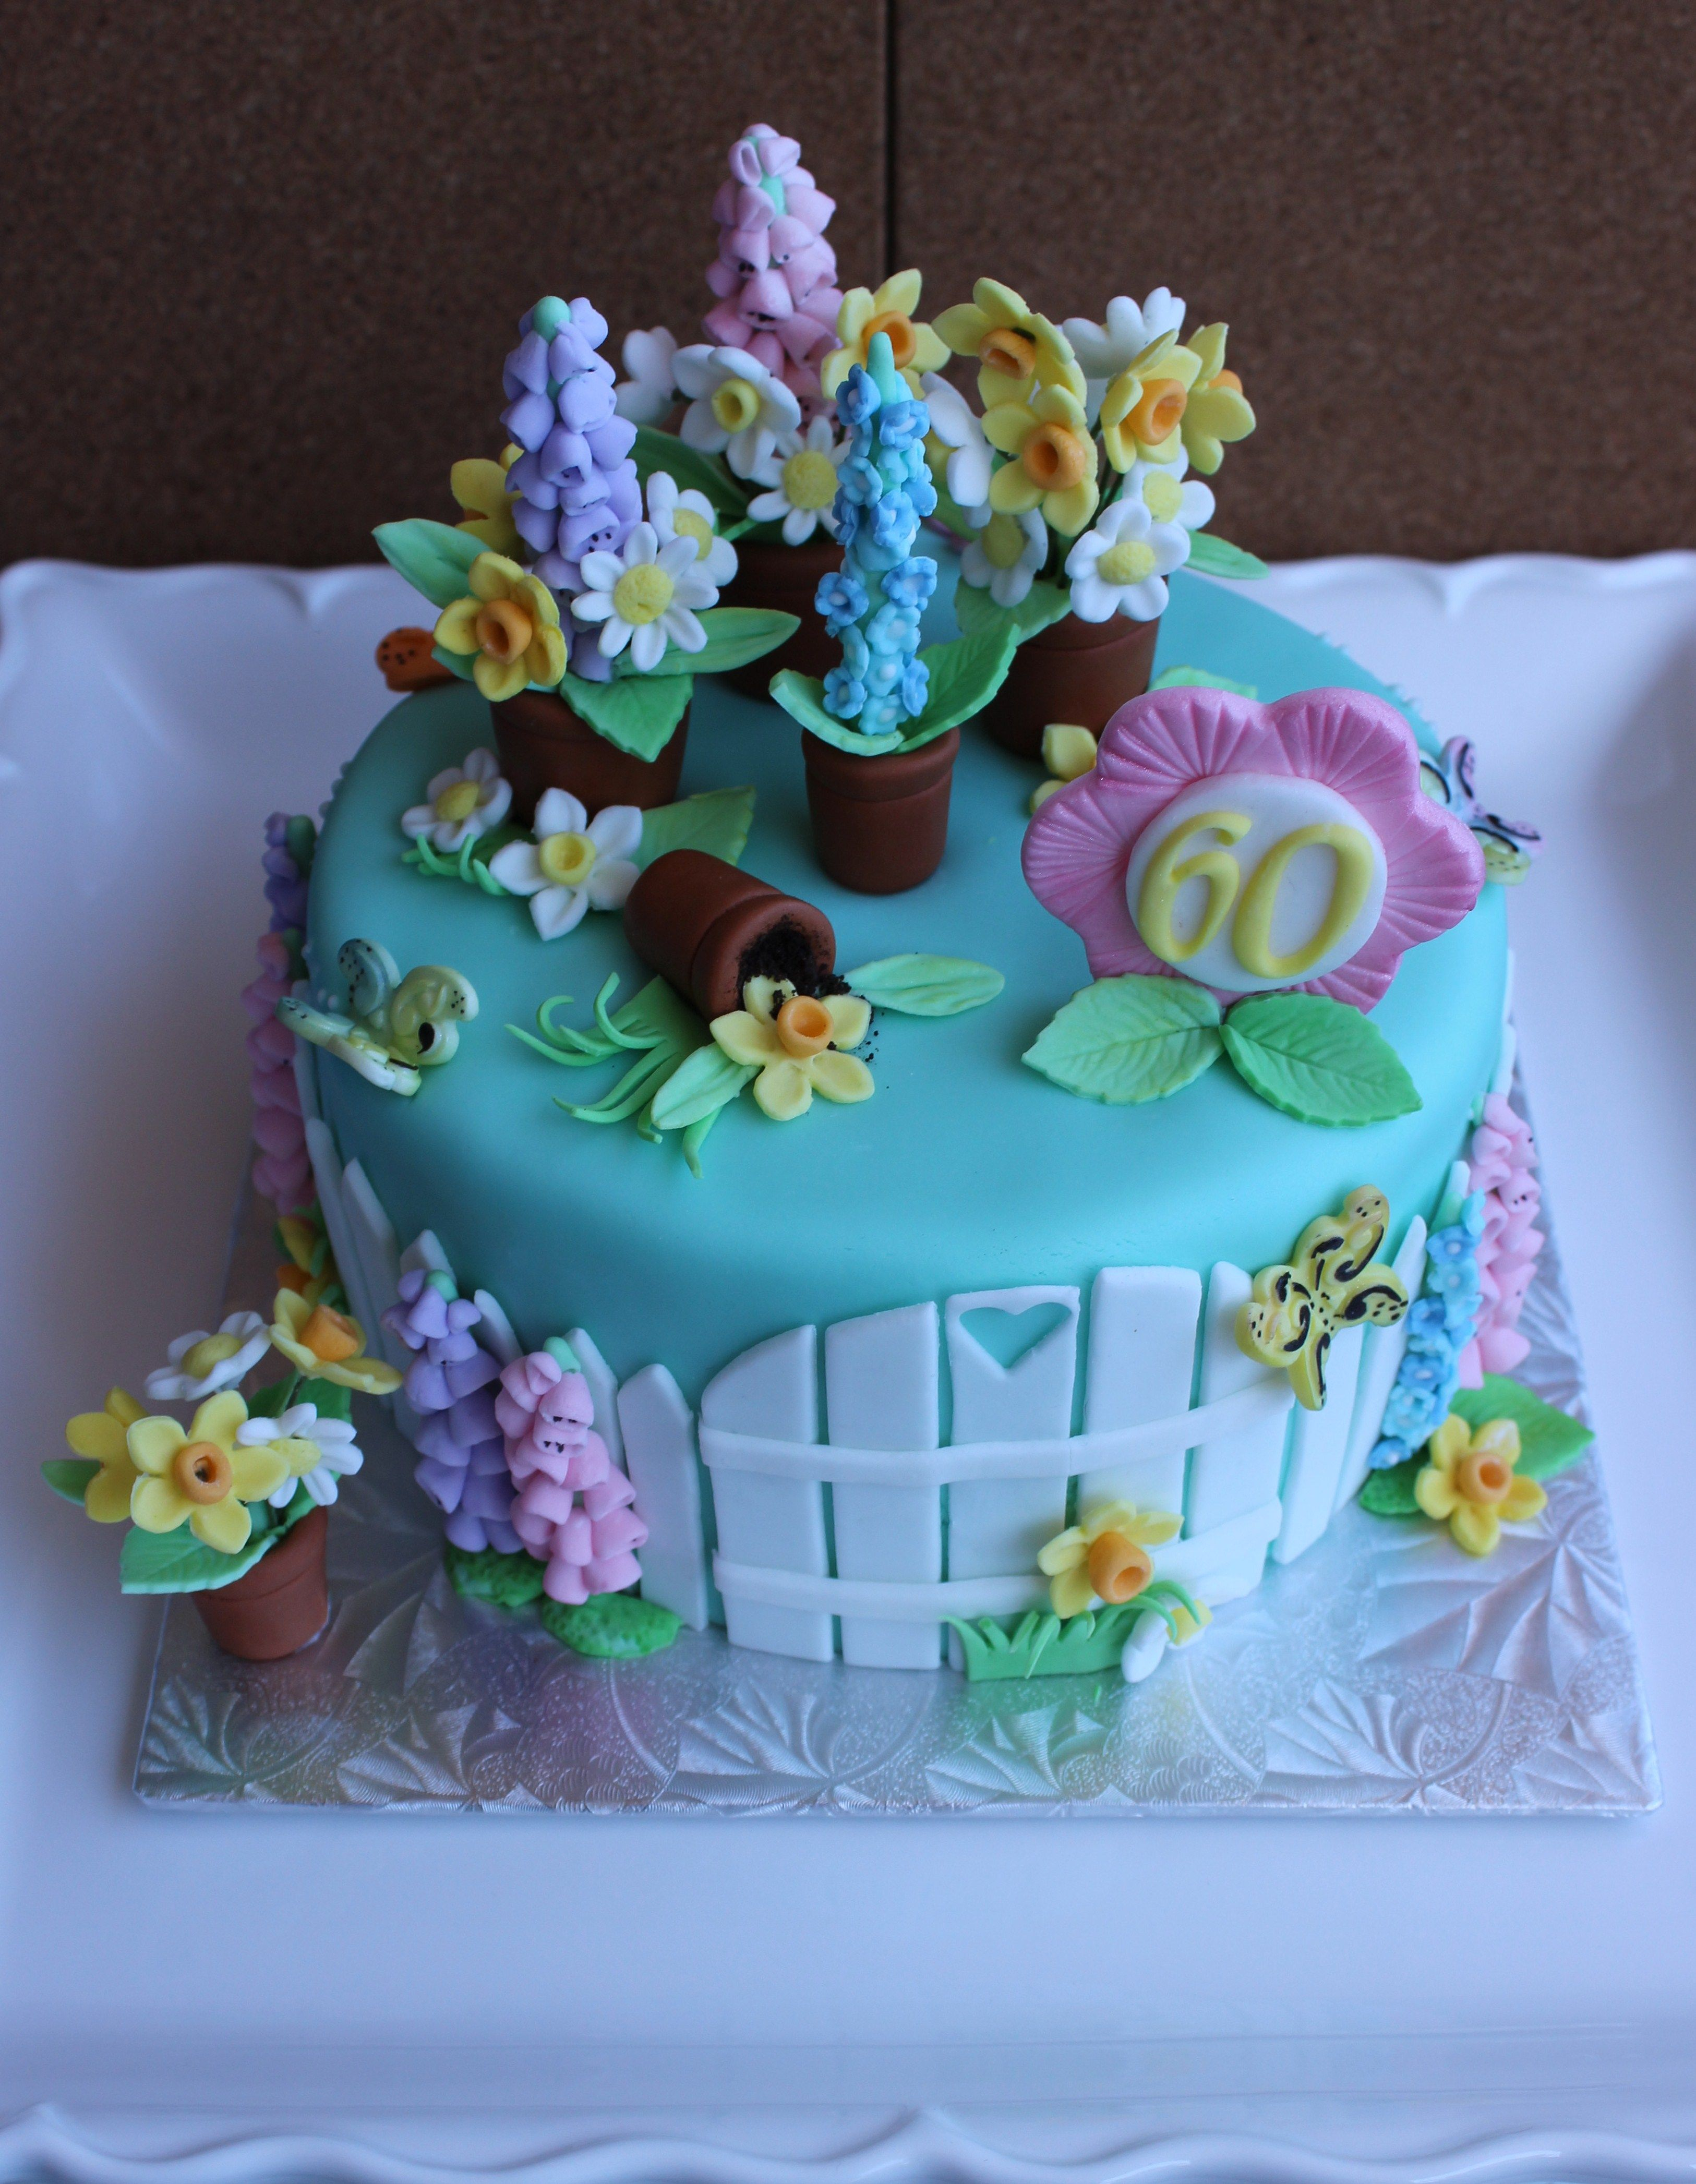 A Lovely Spring Cake A Happy Birthday Spring Flower Cake For A